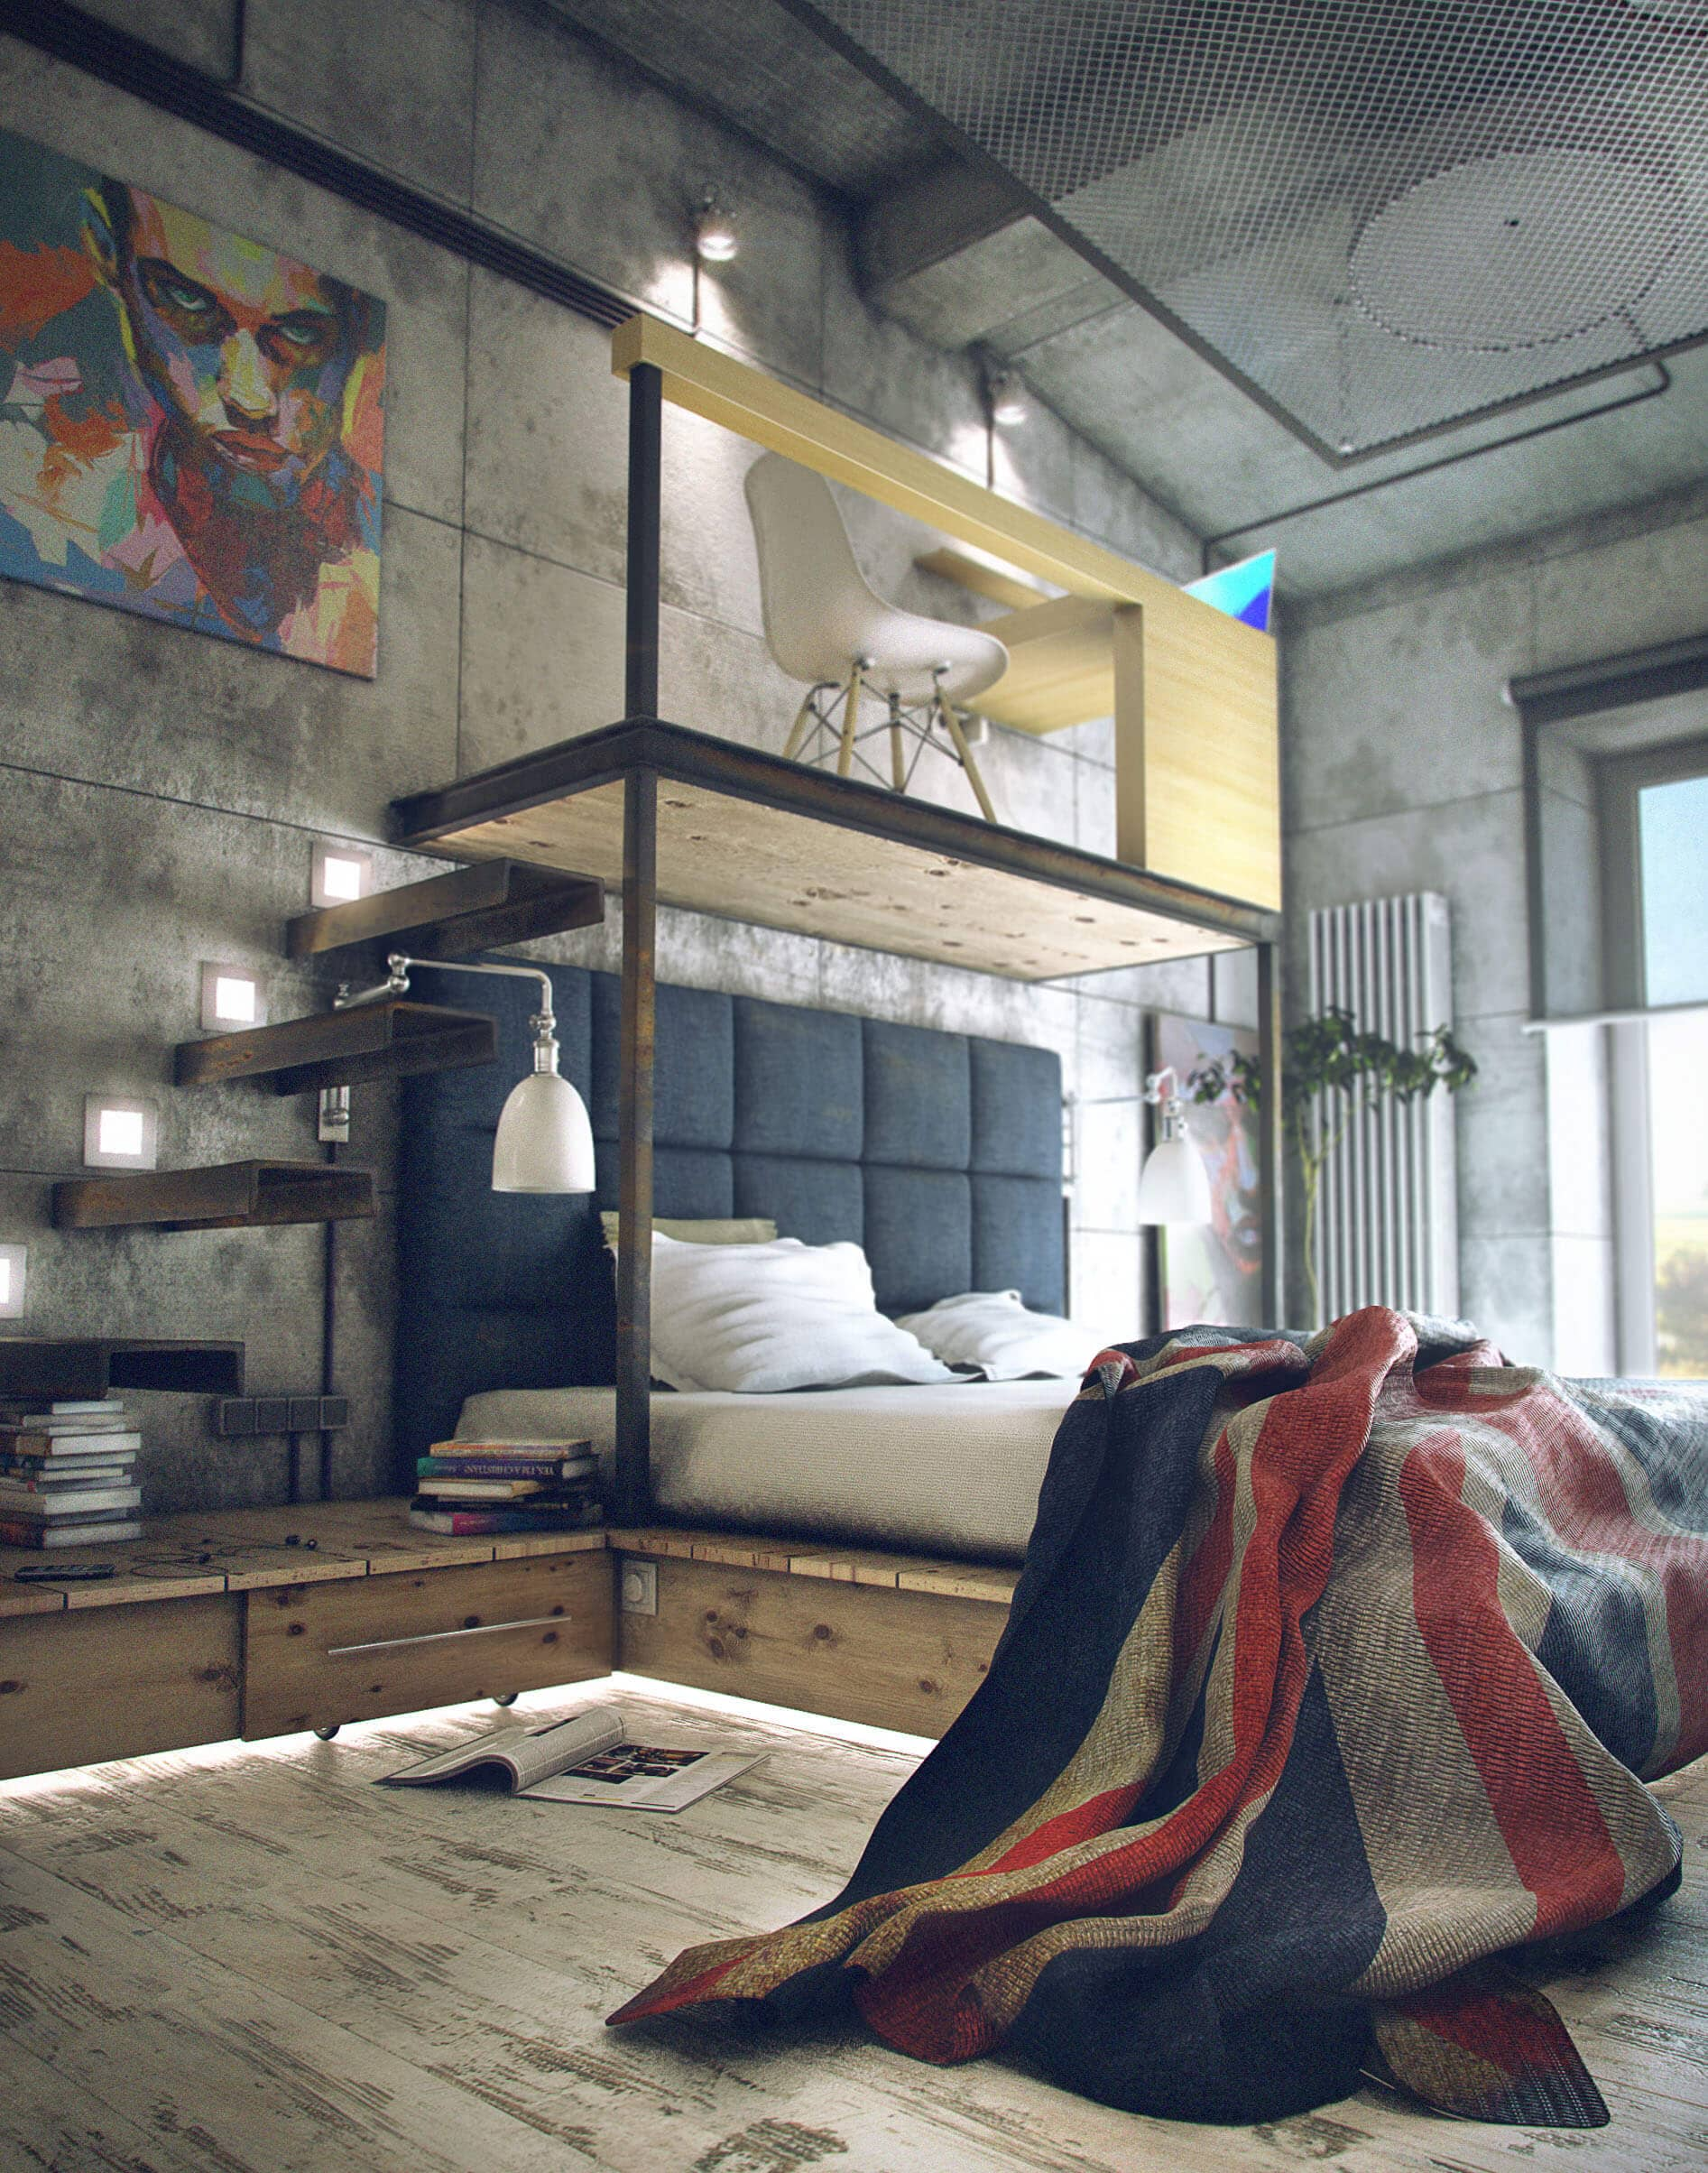 Warm Industrial Loft Bed With Quilted Headboard